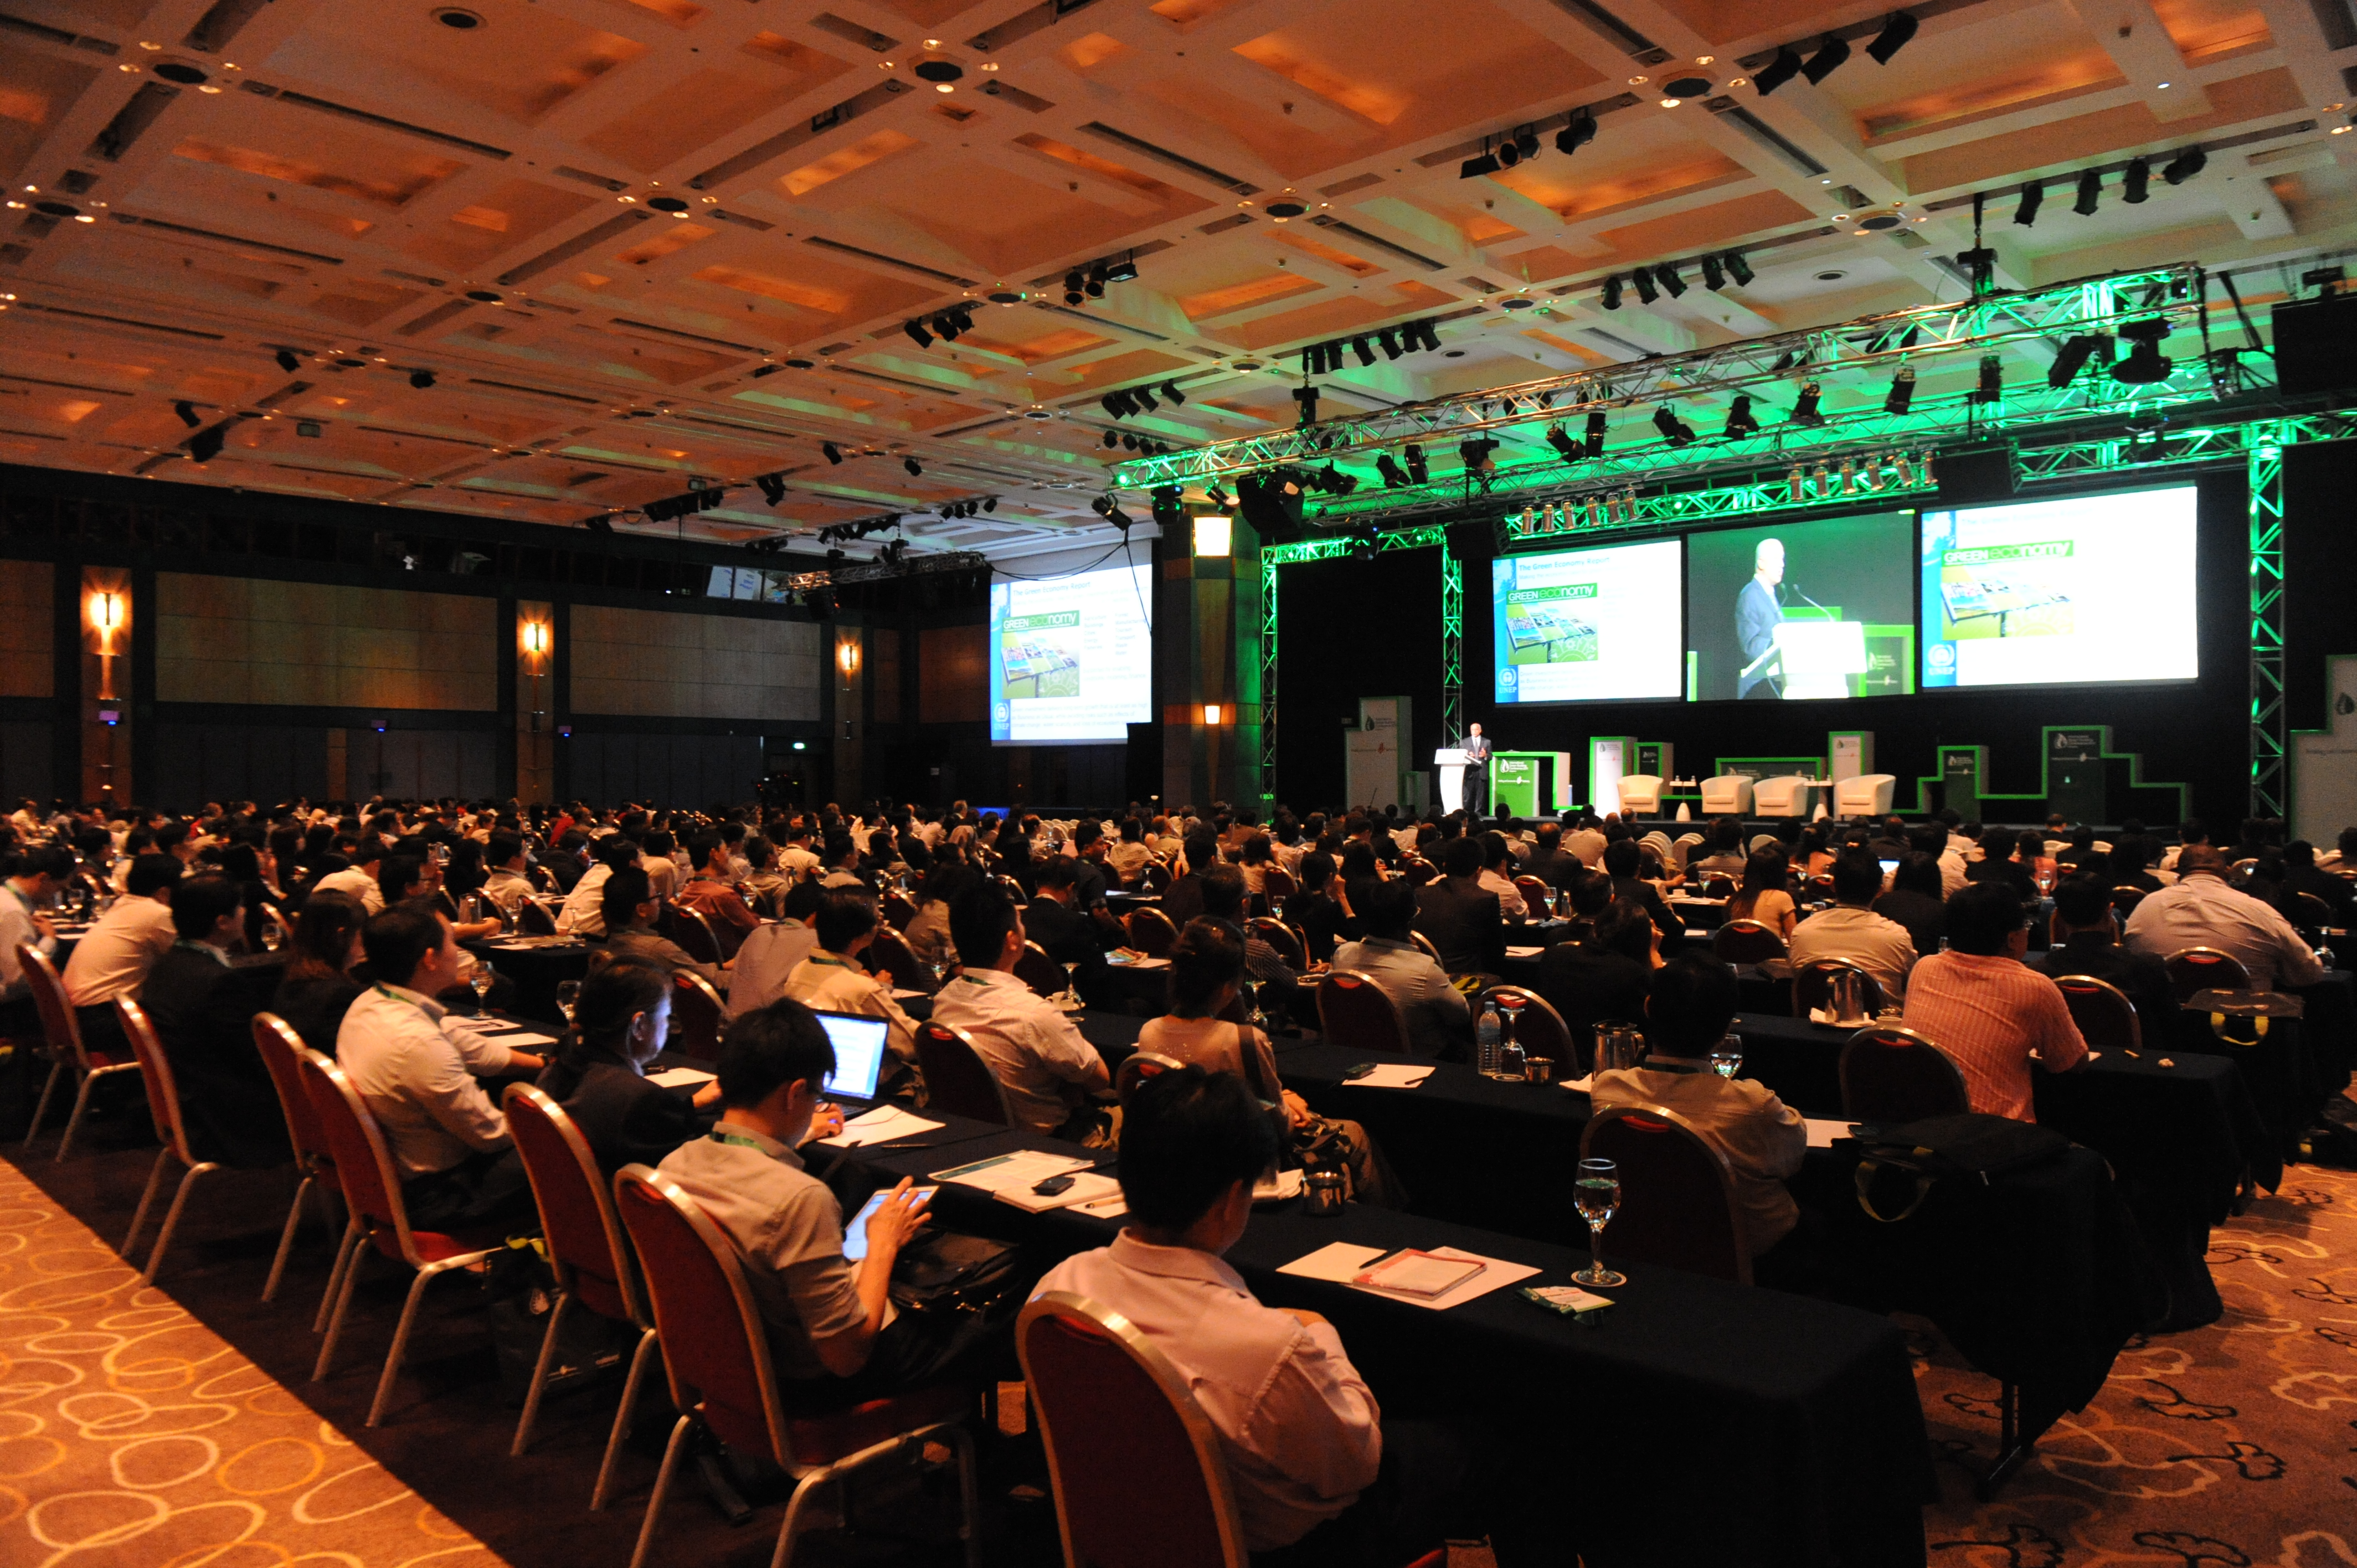 Close_to_1,000_delegates_attended_the_International_Green_Building_Conference_2011